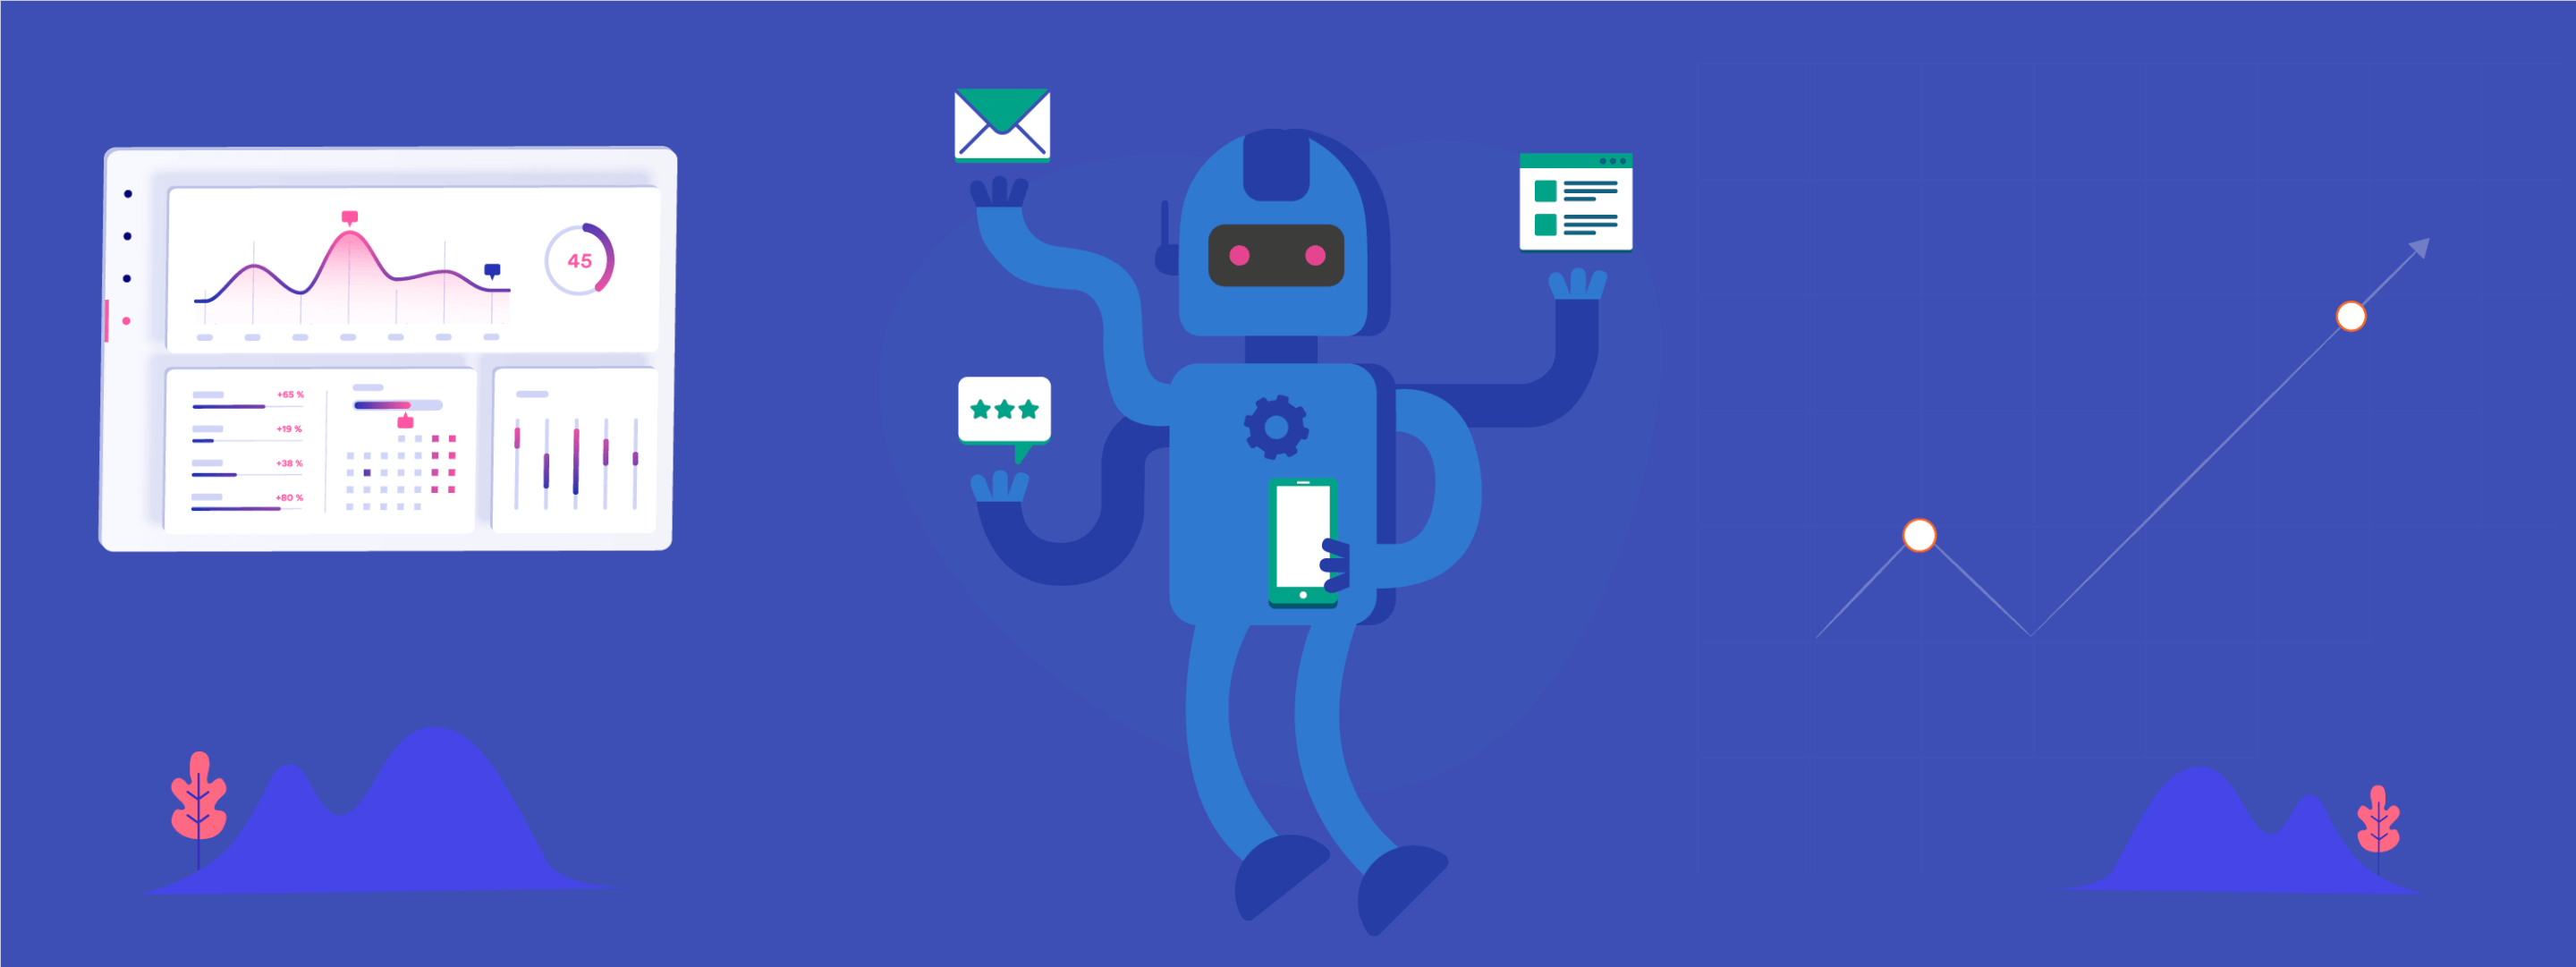 9 Marketing Automation Trends of 2018 That Will Drive Growth